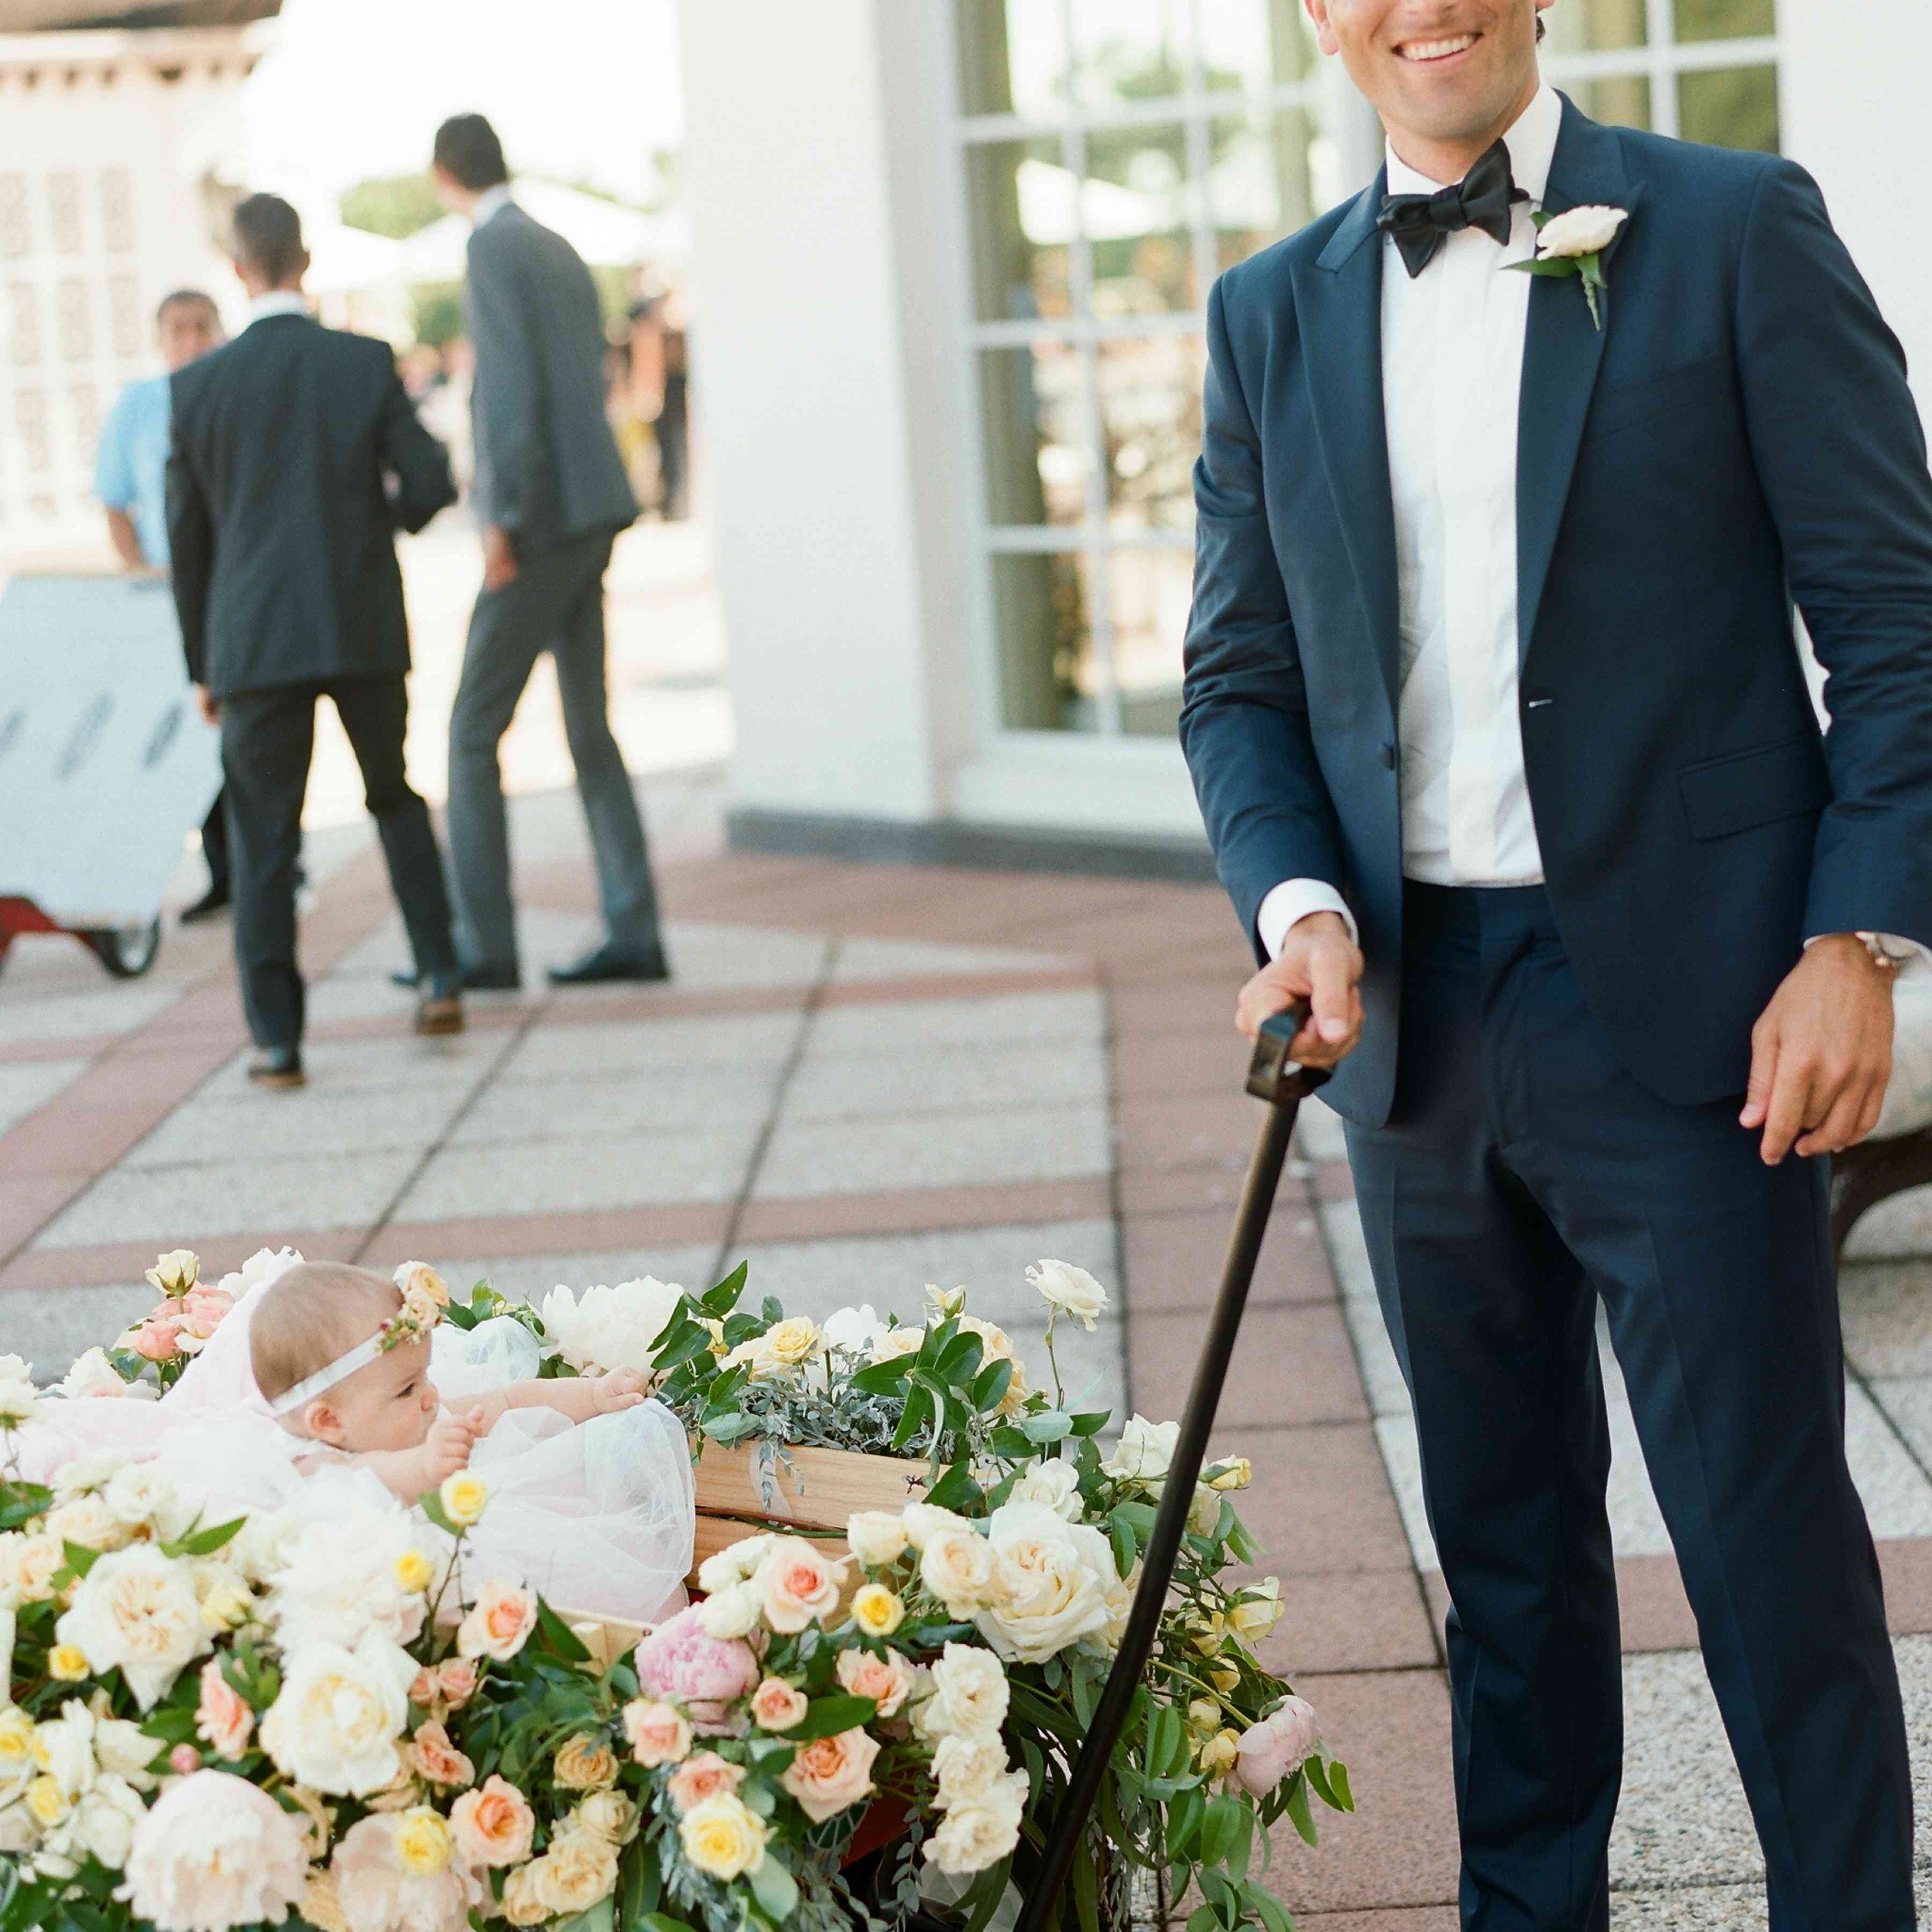 Groom carrying baby in a wagon